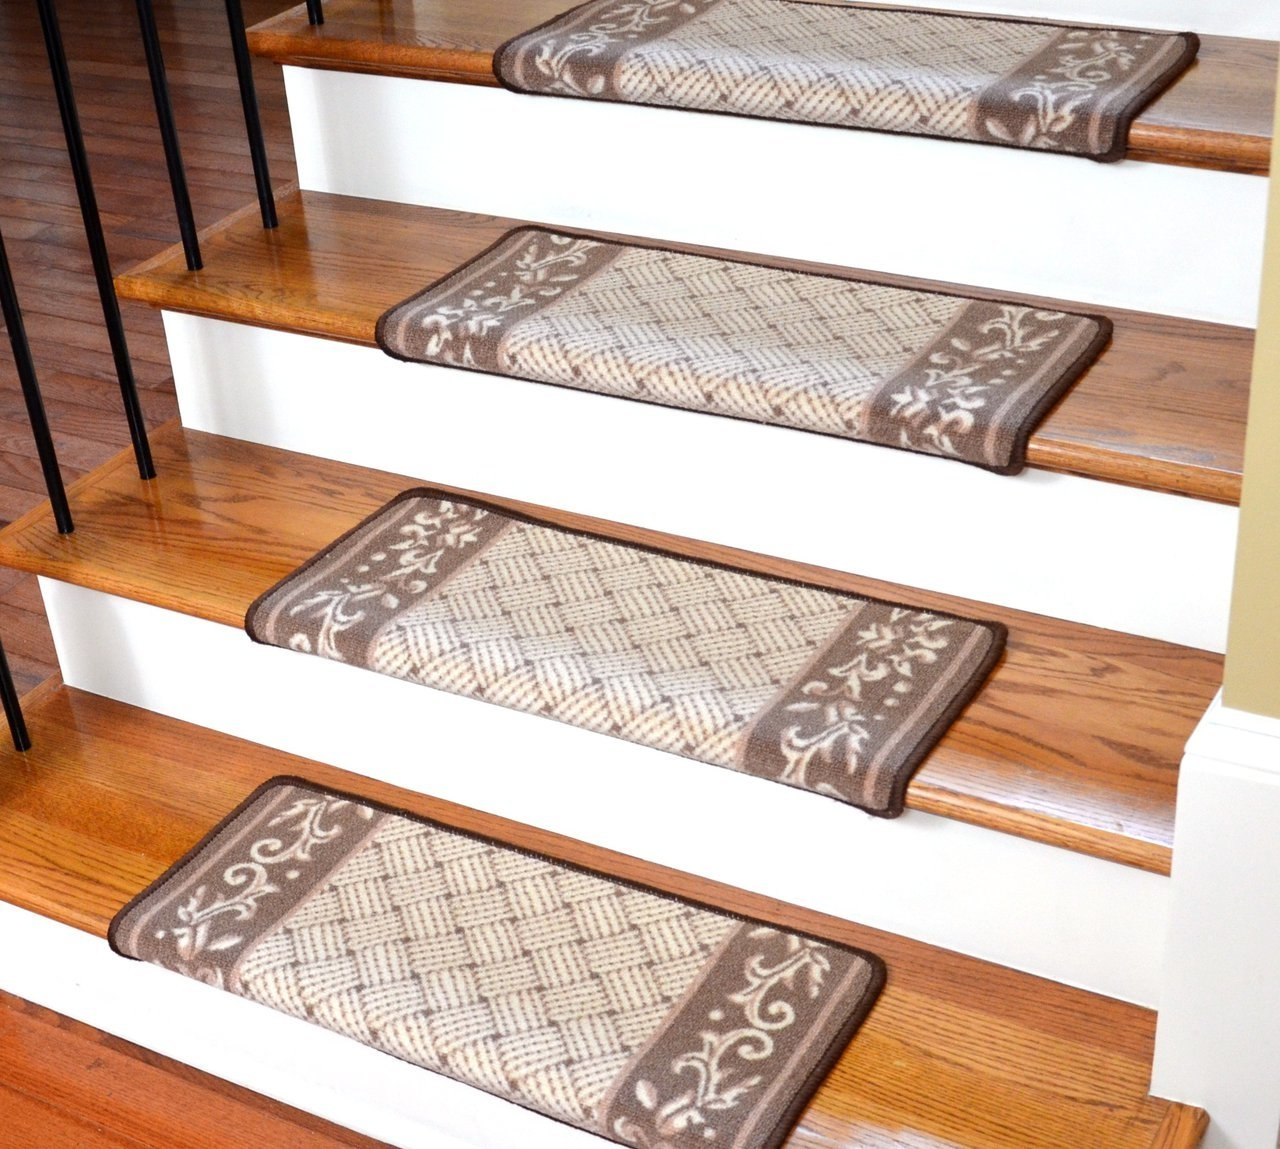 Accessories Oriental Carpet Stair Treads With Wood Stairs And Intended For Oriental Carpet Stair Treads (View 13 of 15)